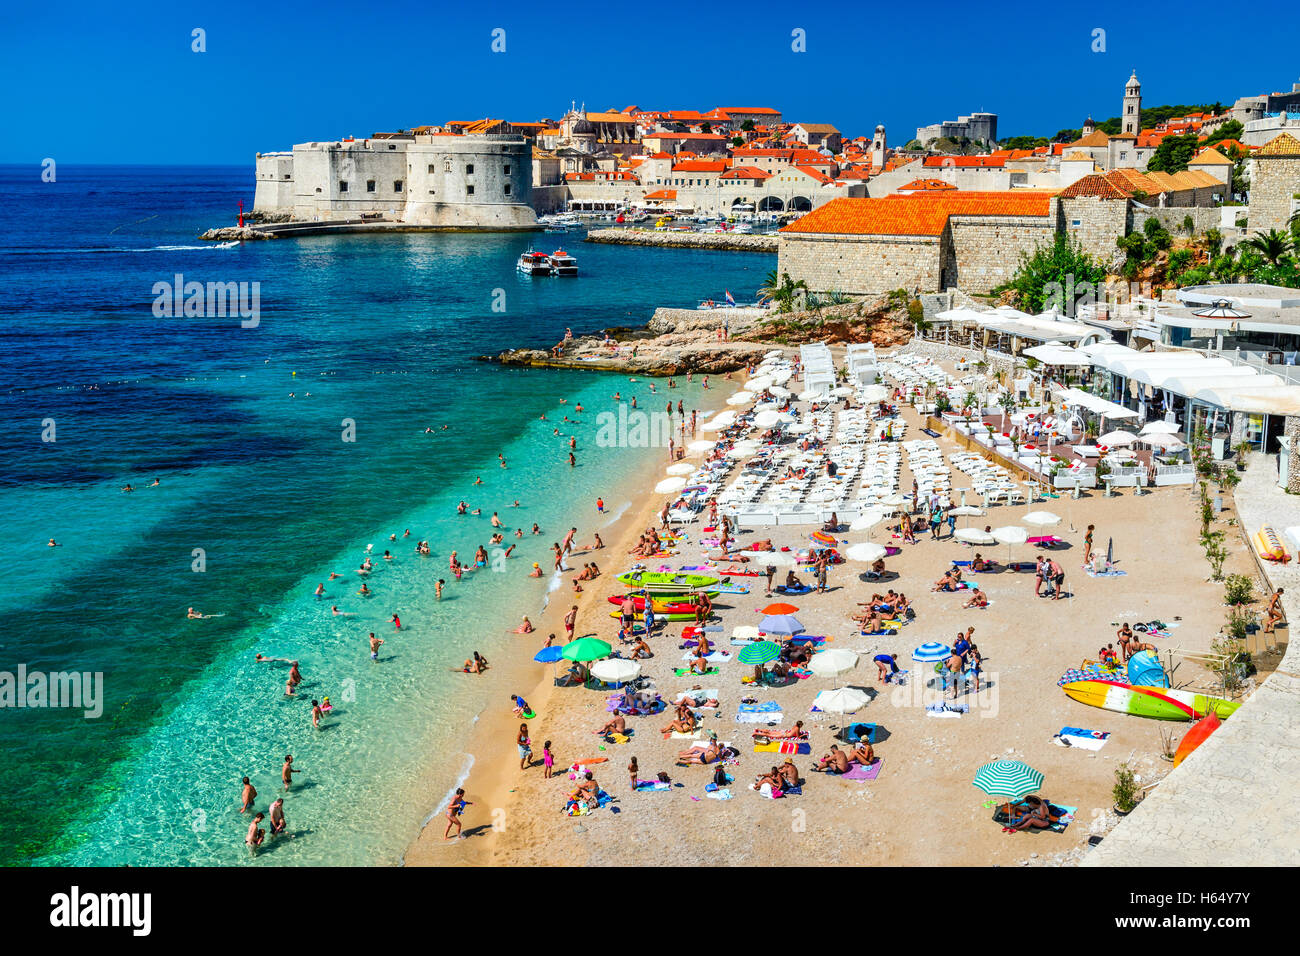 Dubrovnik, Croatia. Panoramic view on the old town (medieval Ragusa) and Dalmatian Coast of Adriatic Sea. - Stock Image